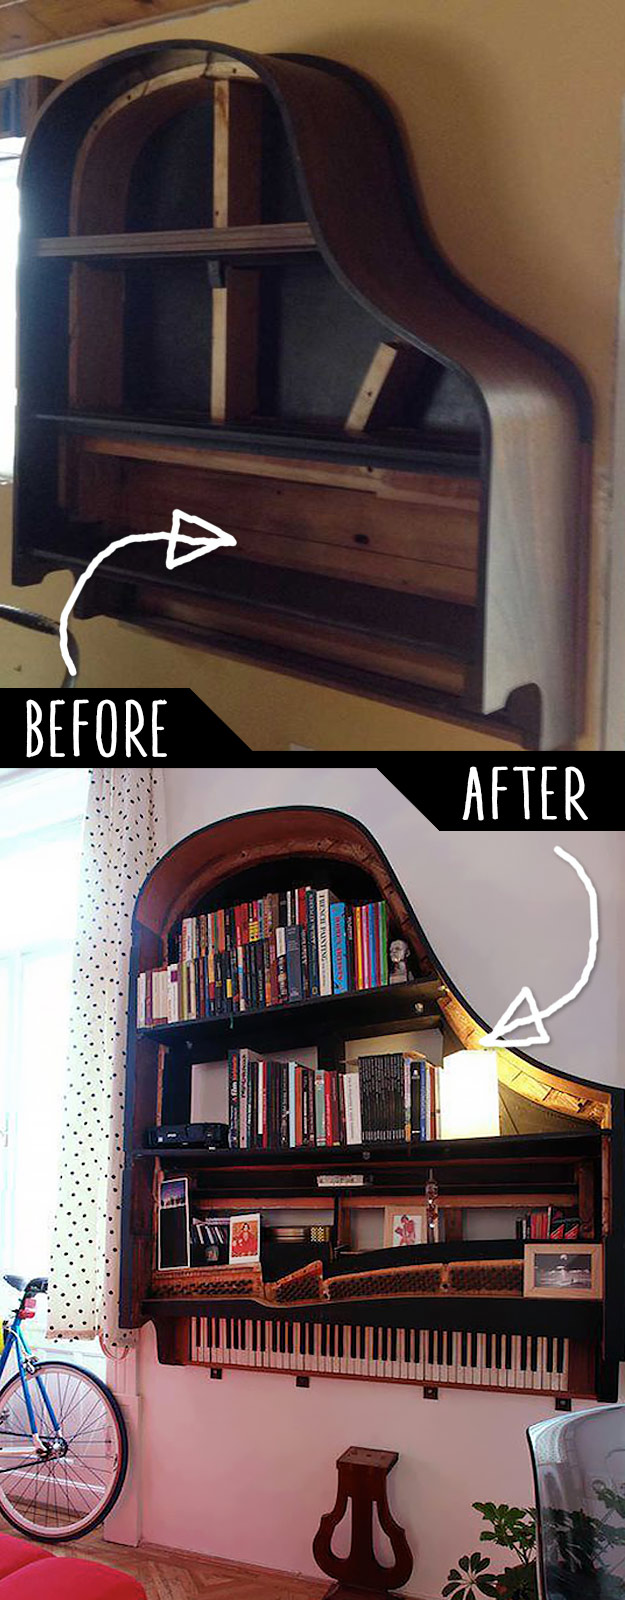 19 DIY Idea To Play With Old Furniture 2